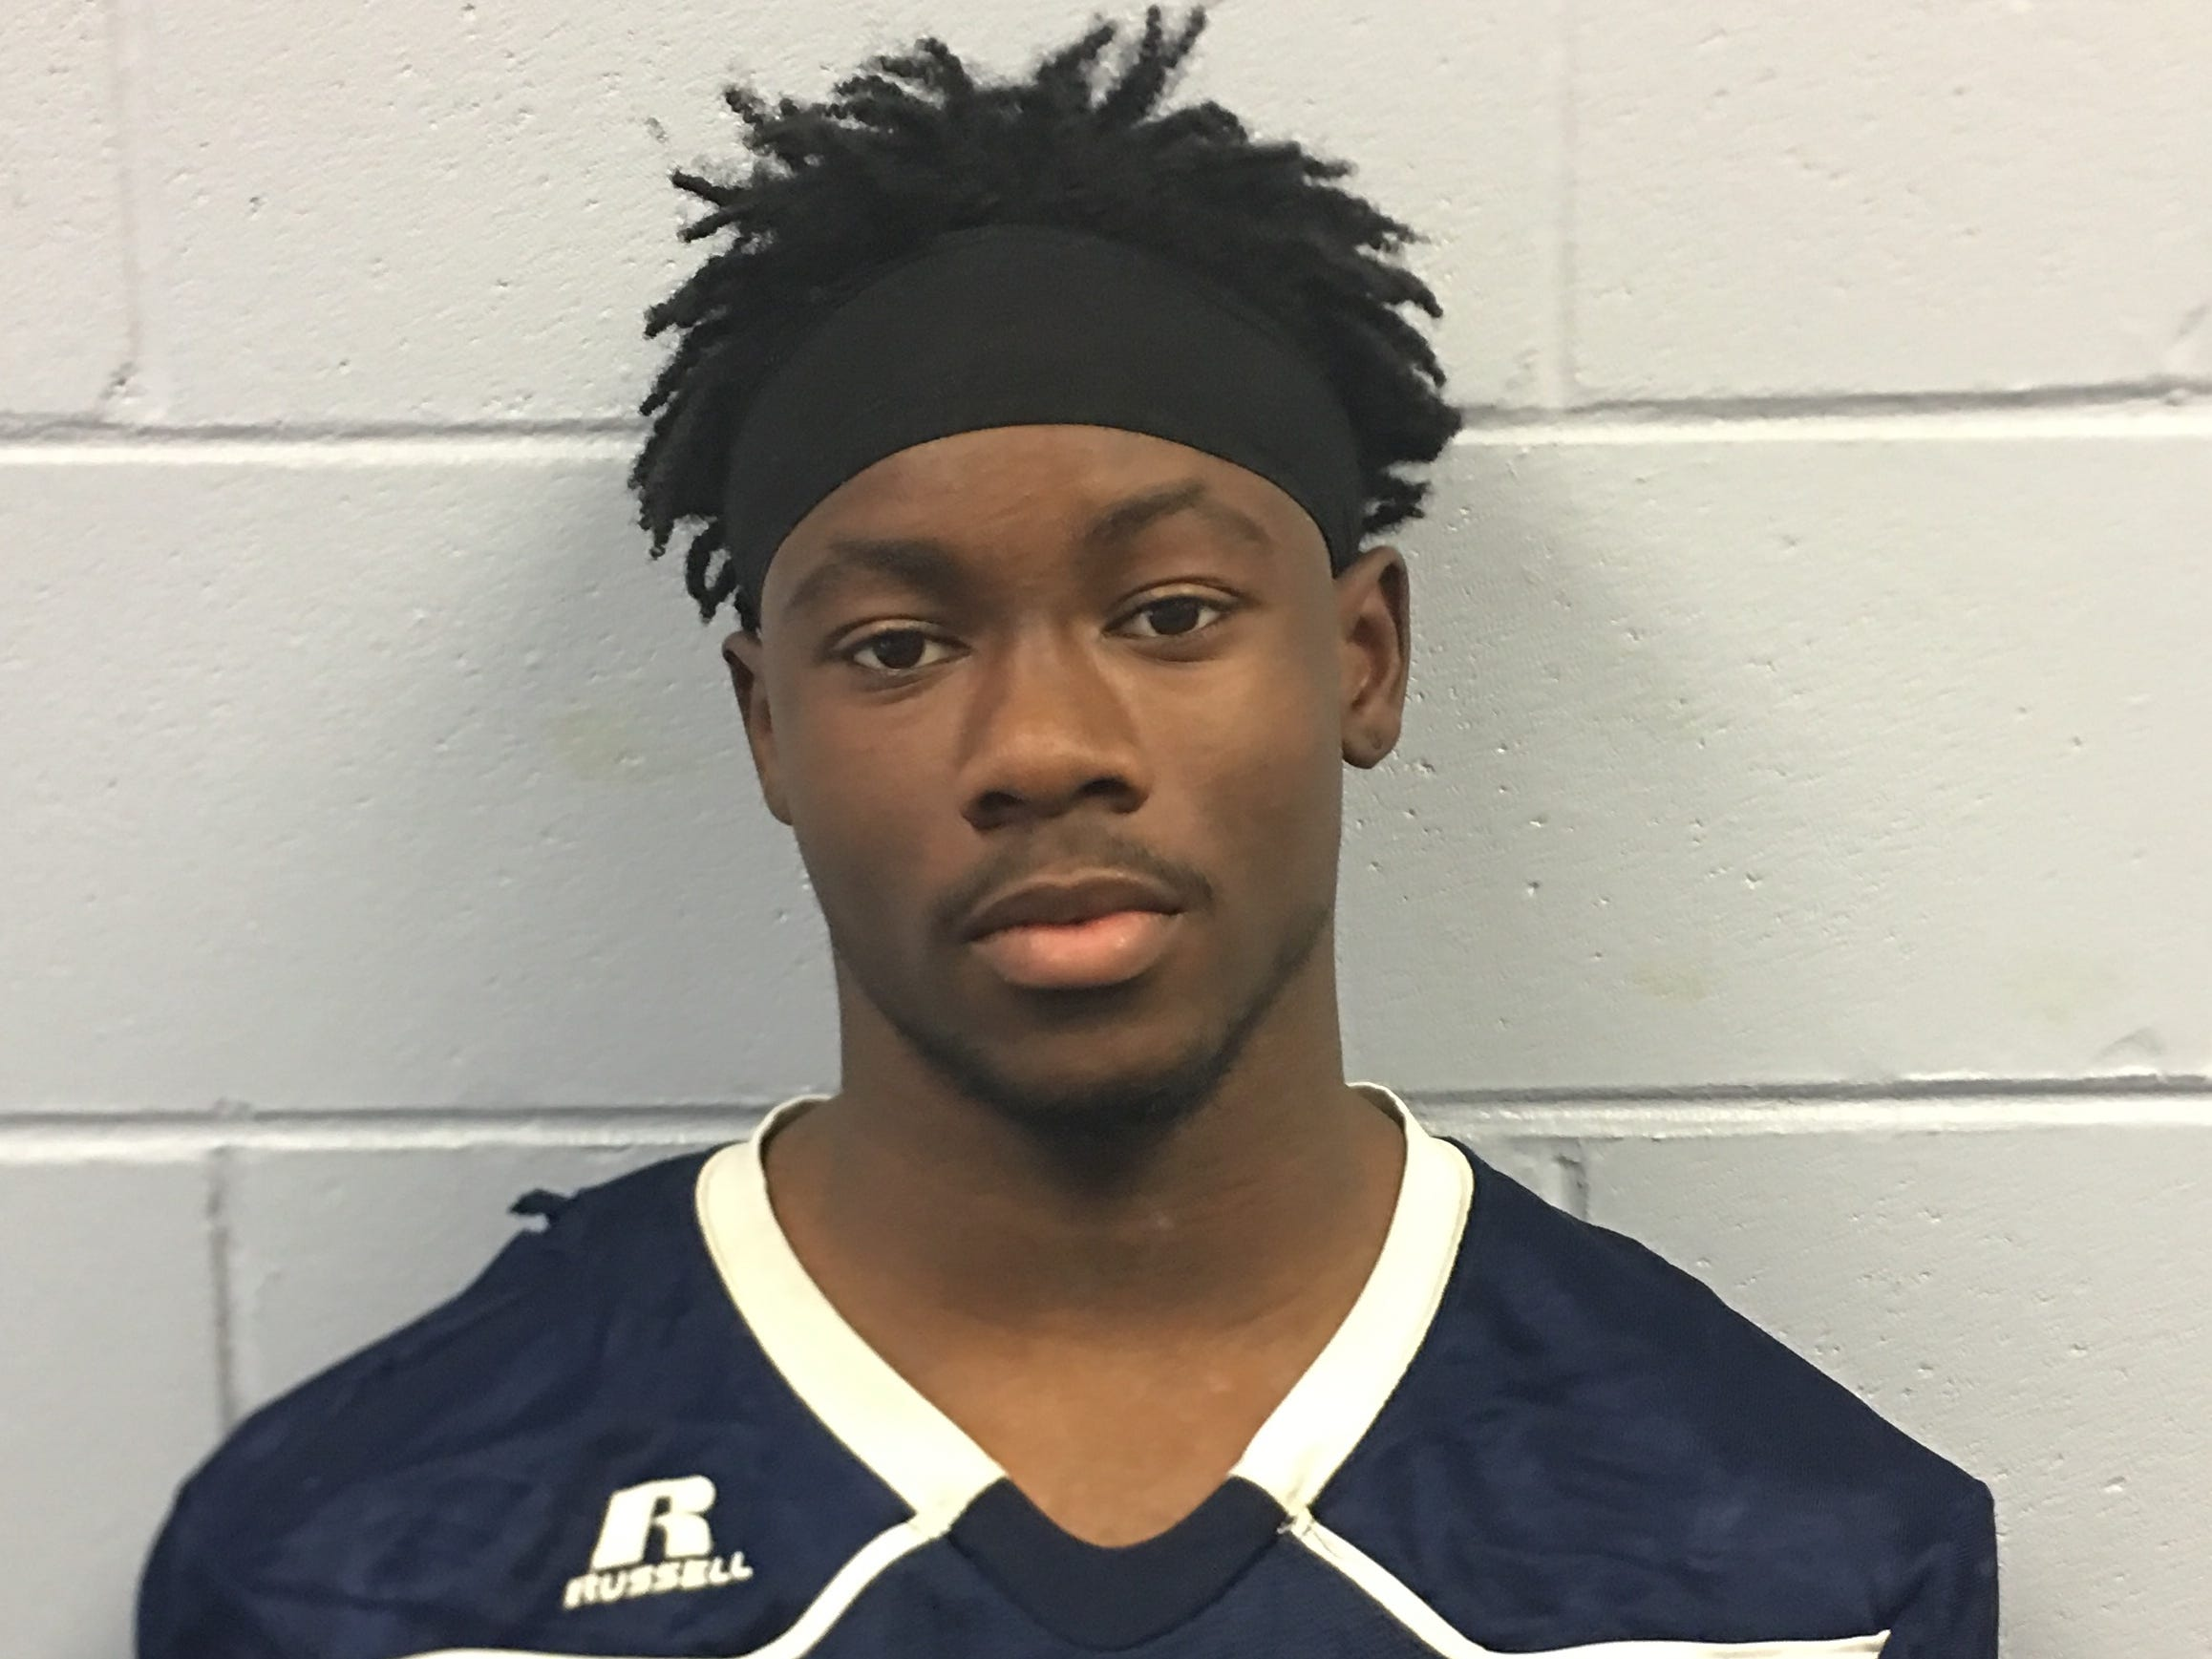 Gadsedn County senior running back Koleion Rich was named to the 2018 All-Big Bend football first team for offense. STATS: 1,250 rush yards, 7 TD; 350 rec. yards; 3 KR TD; pass TD